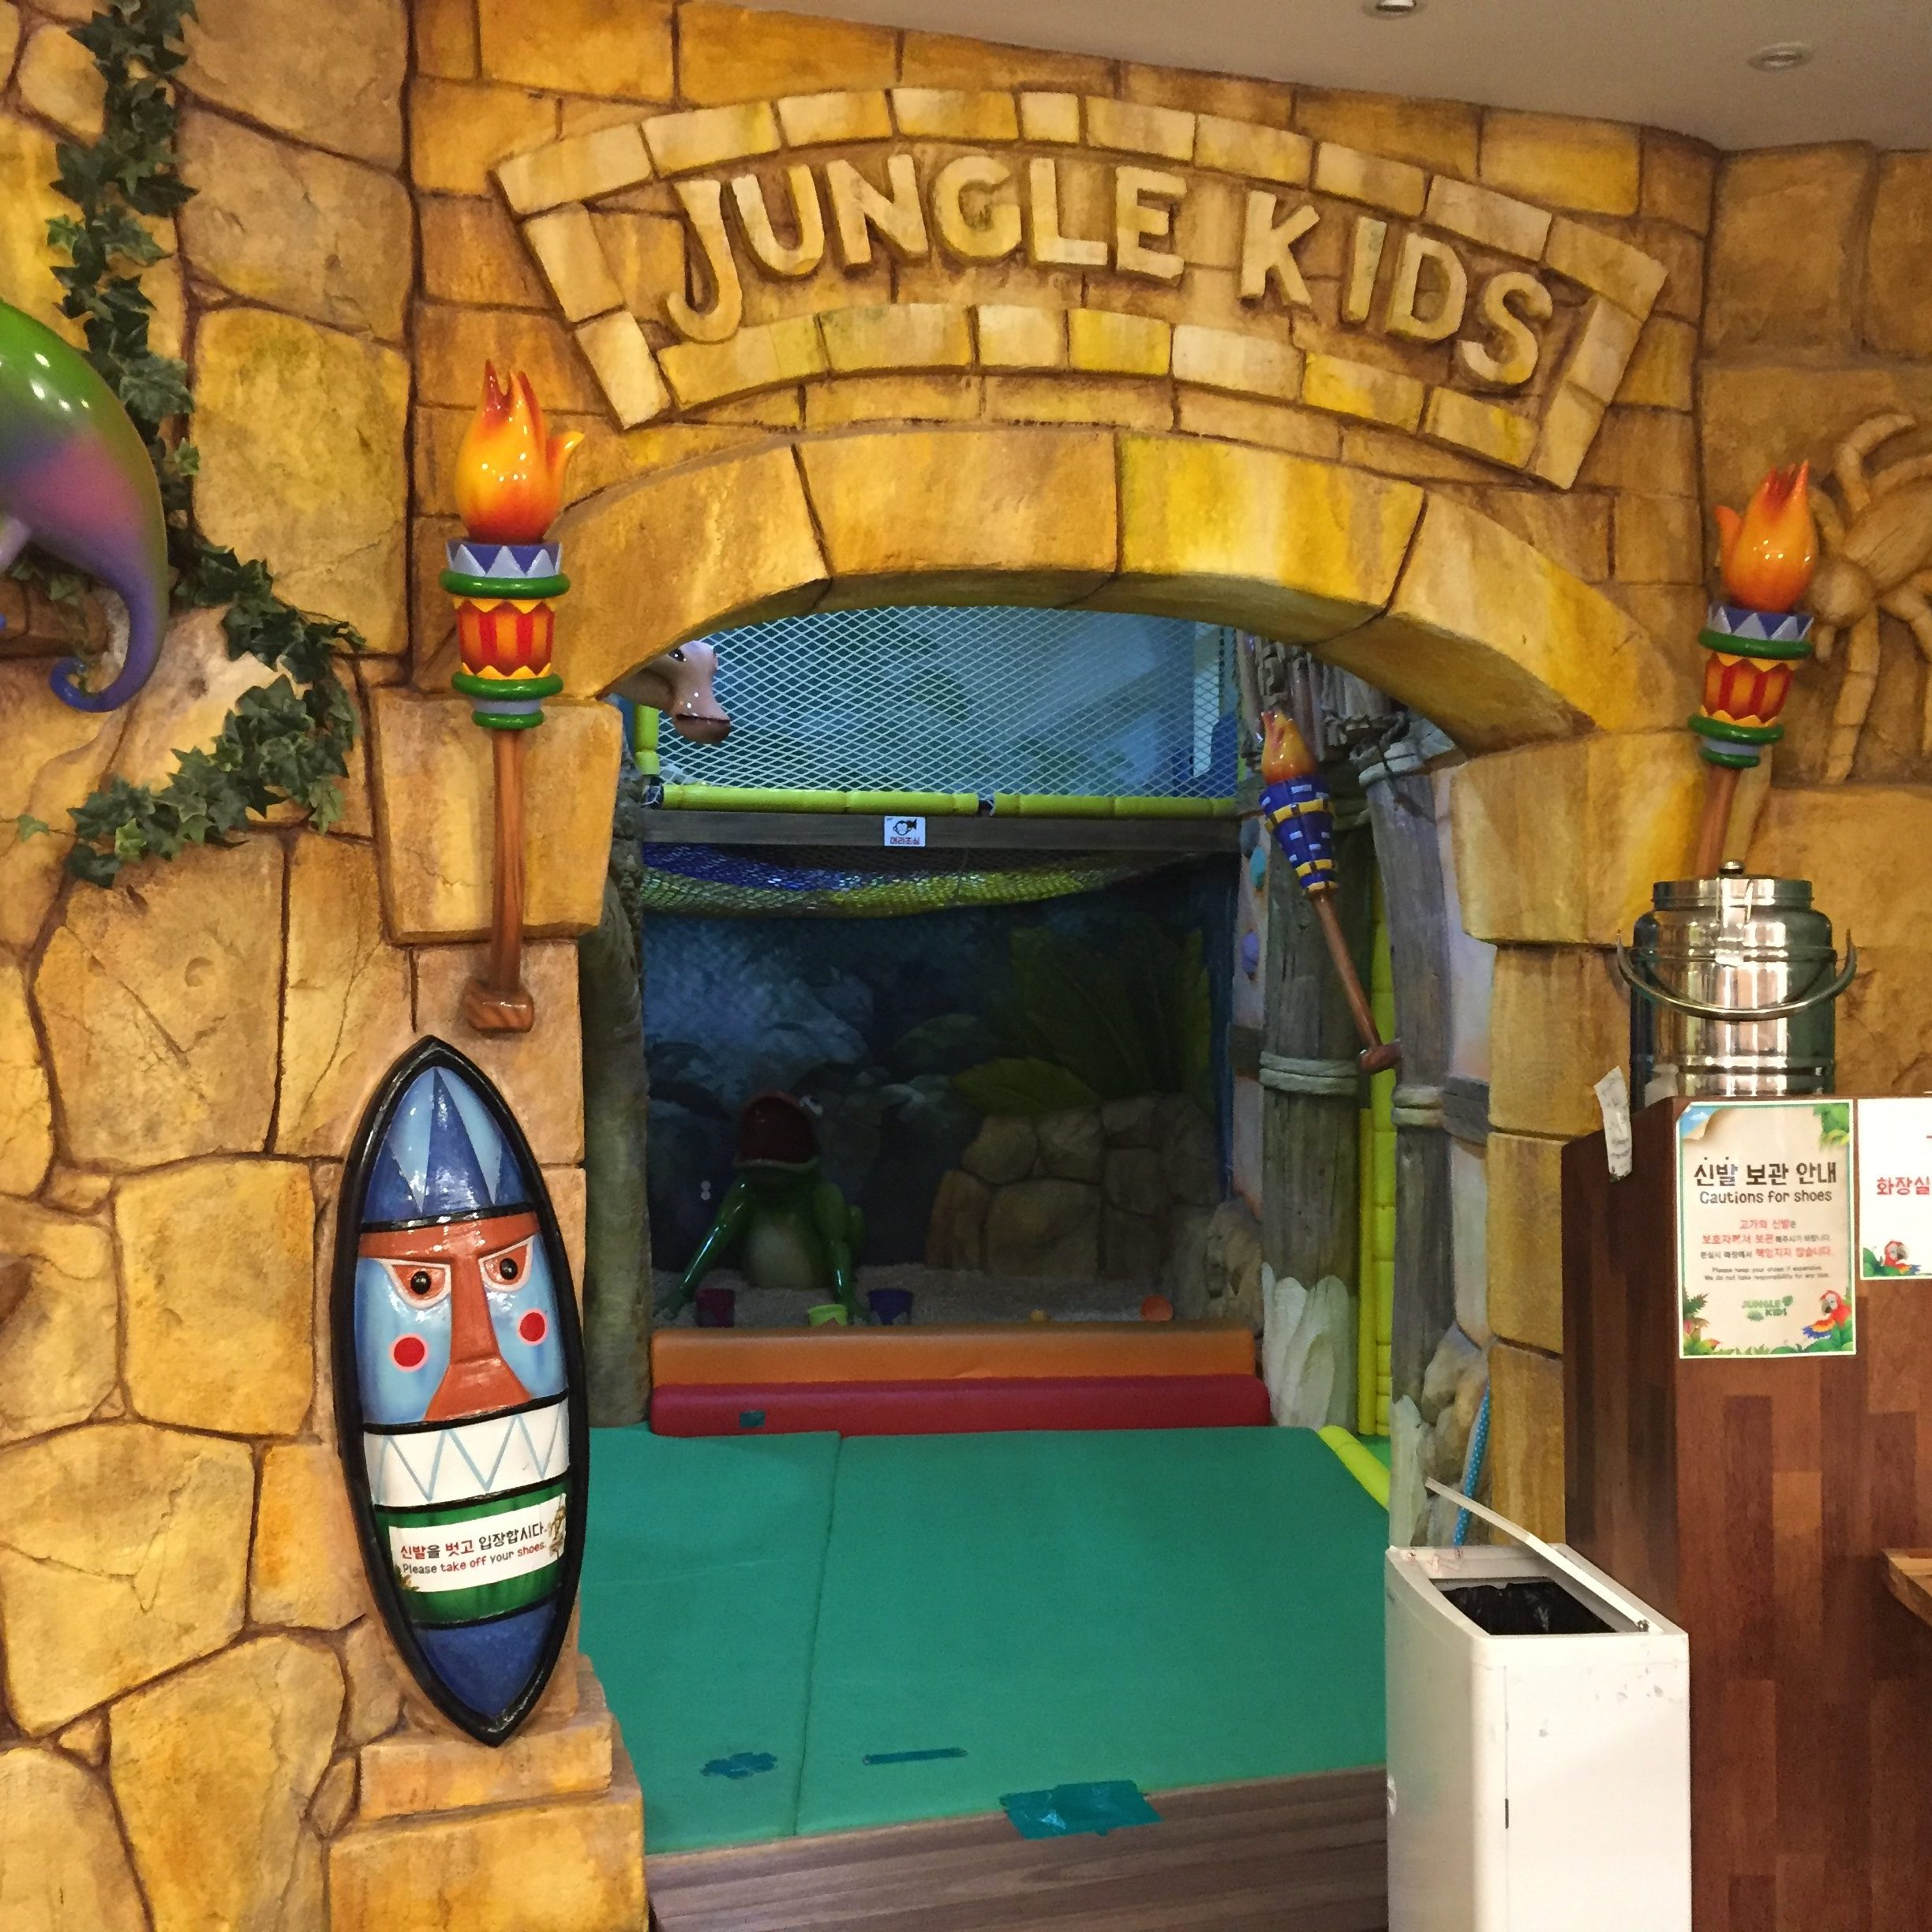 Jungle Kids Cafe at Seoul - The Entrance